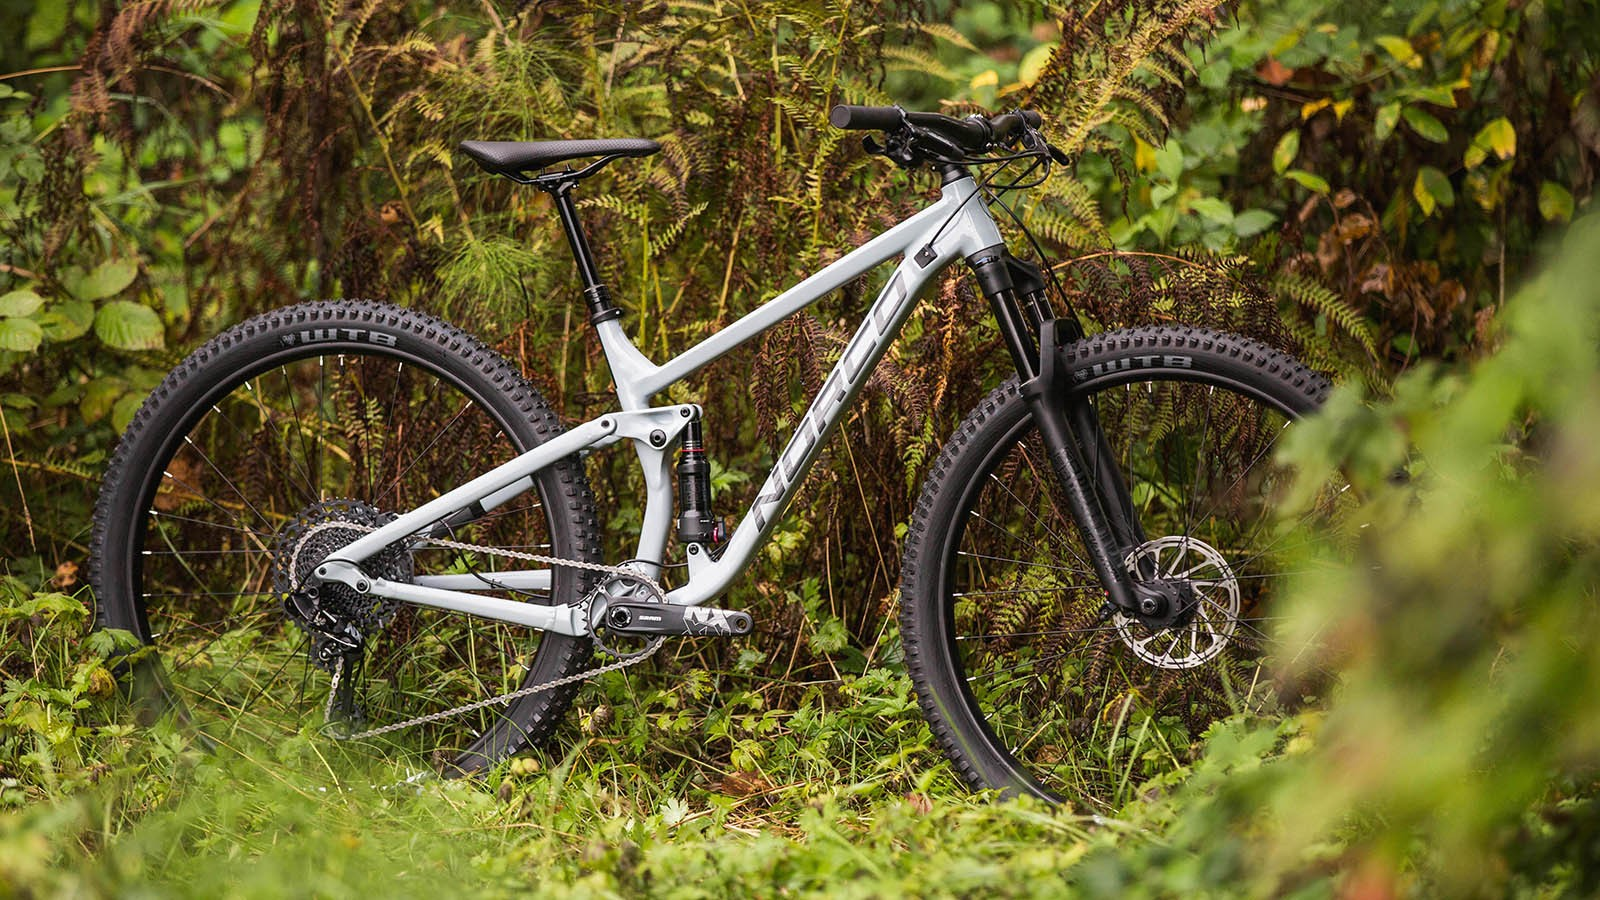 The X6 Alloy frame features modern geometry, internal cable routing and thru-axles